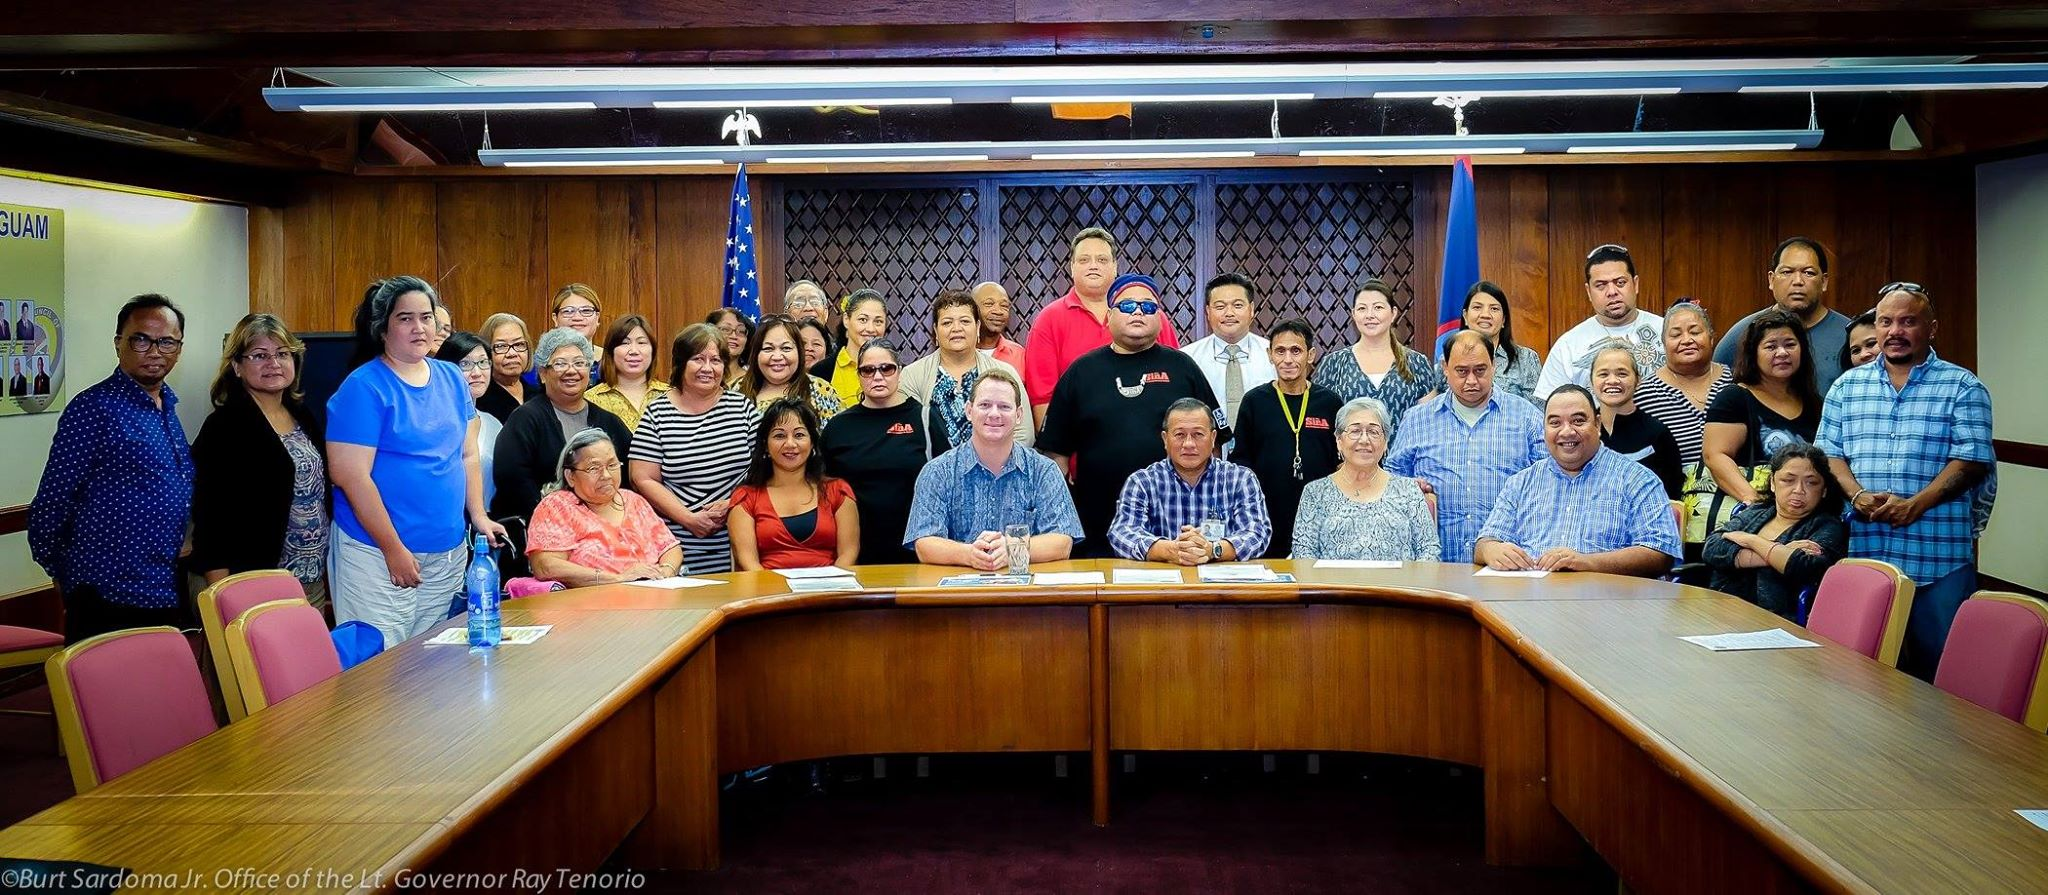 Large group poses for photo in Governor's conference room.